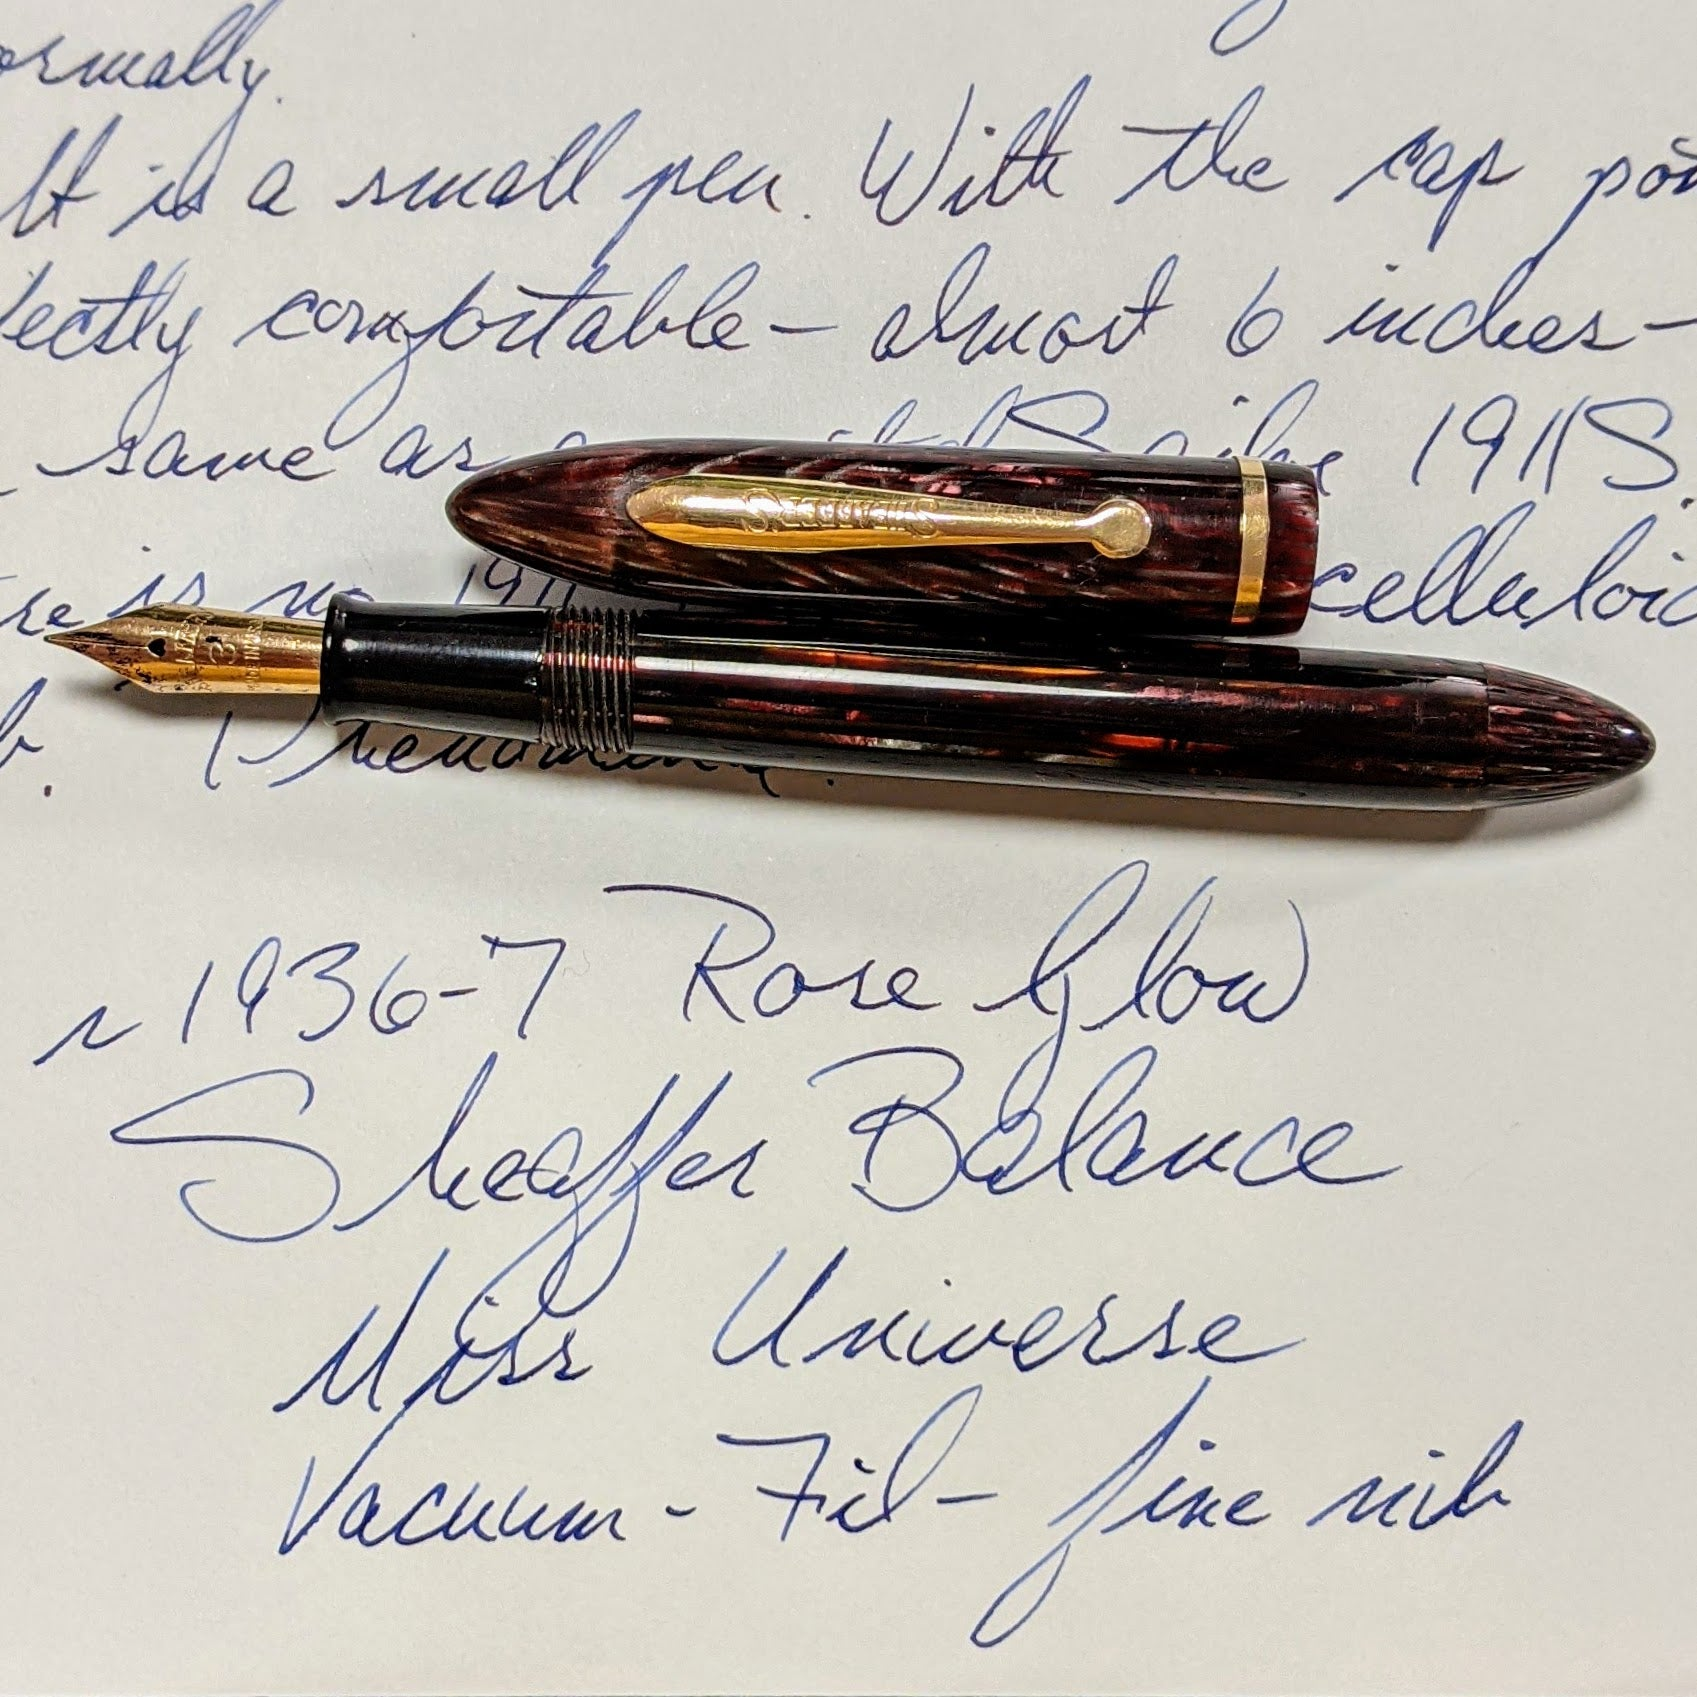 1936-7 Rose Glow Sheaffer Balance Miss Universe